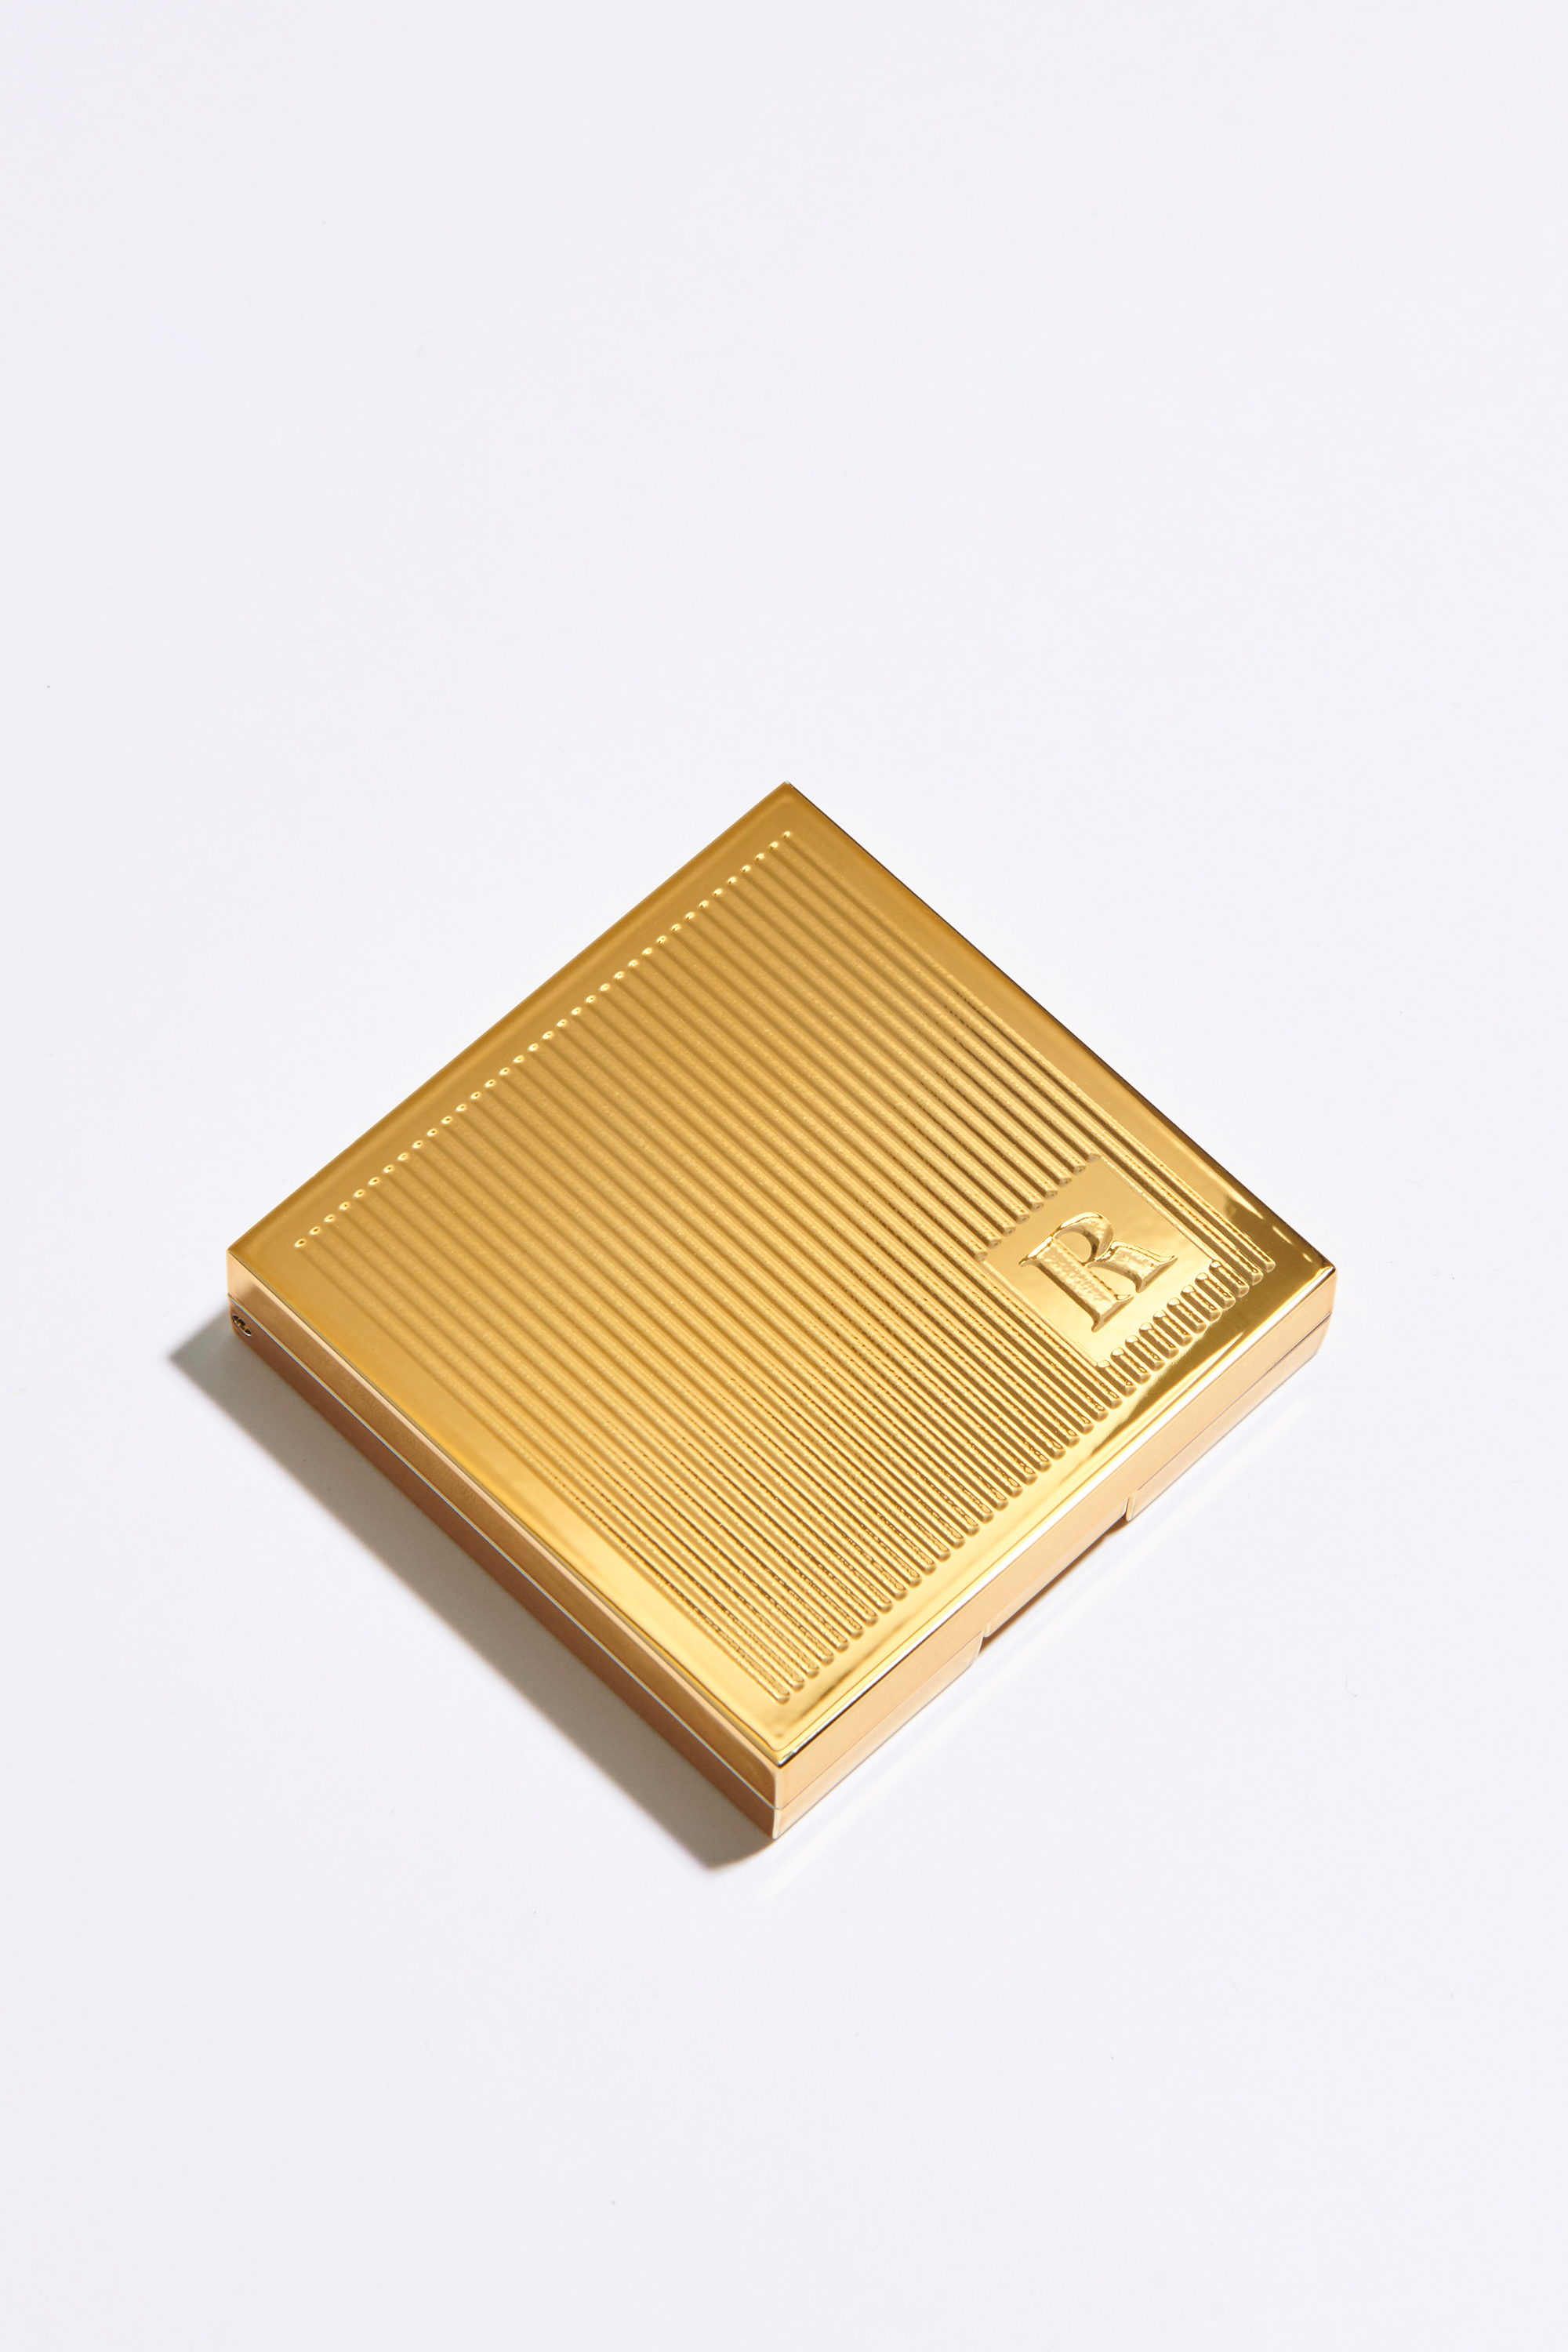 Lip Palette les 4 Rouje cream